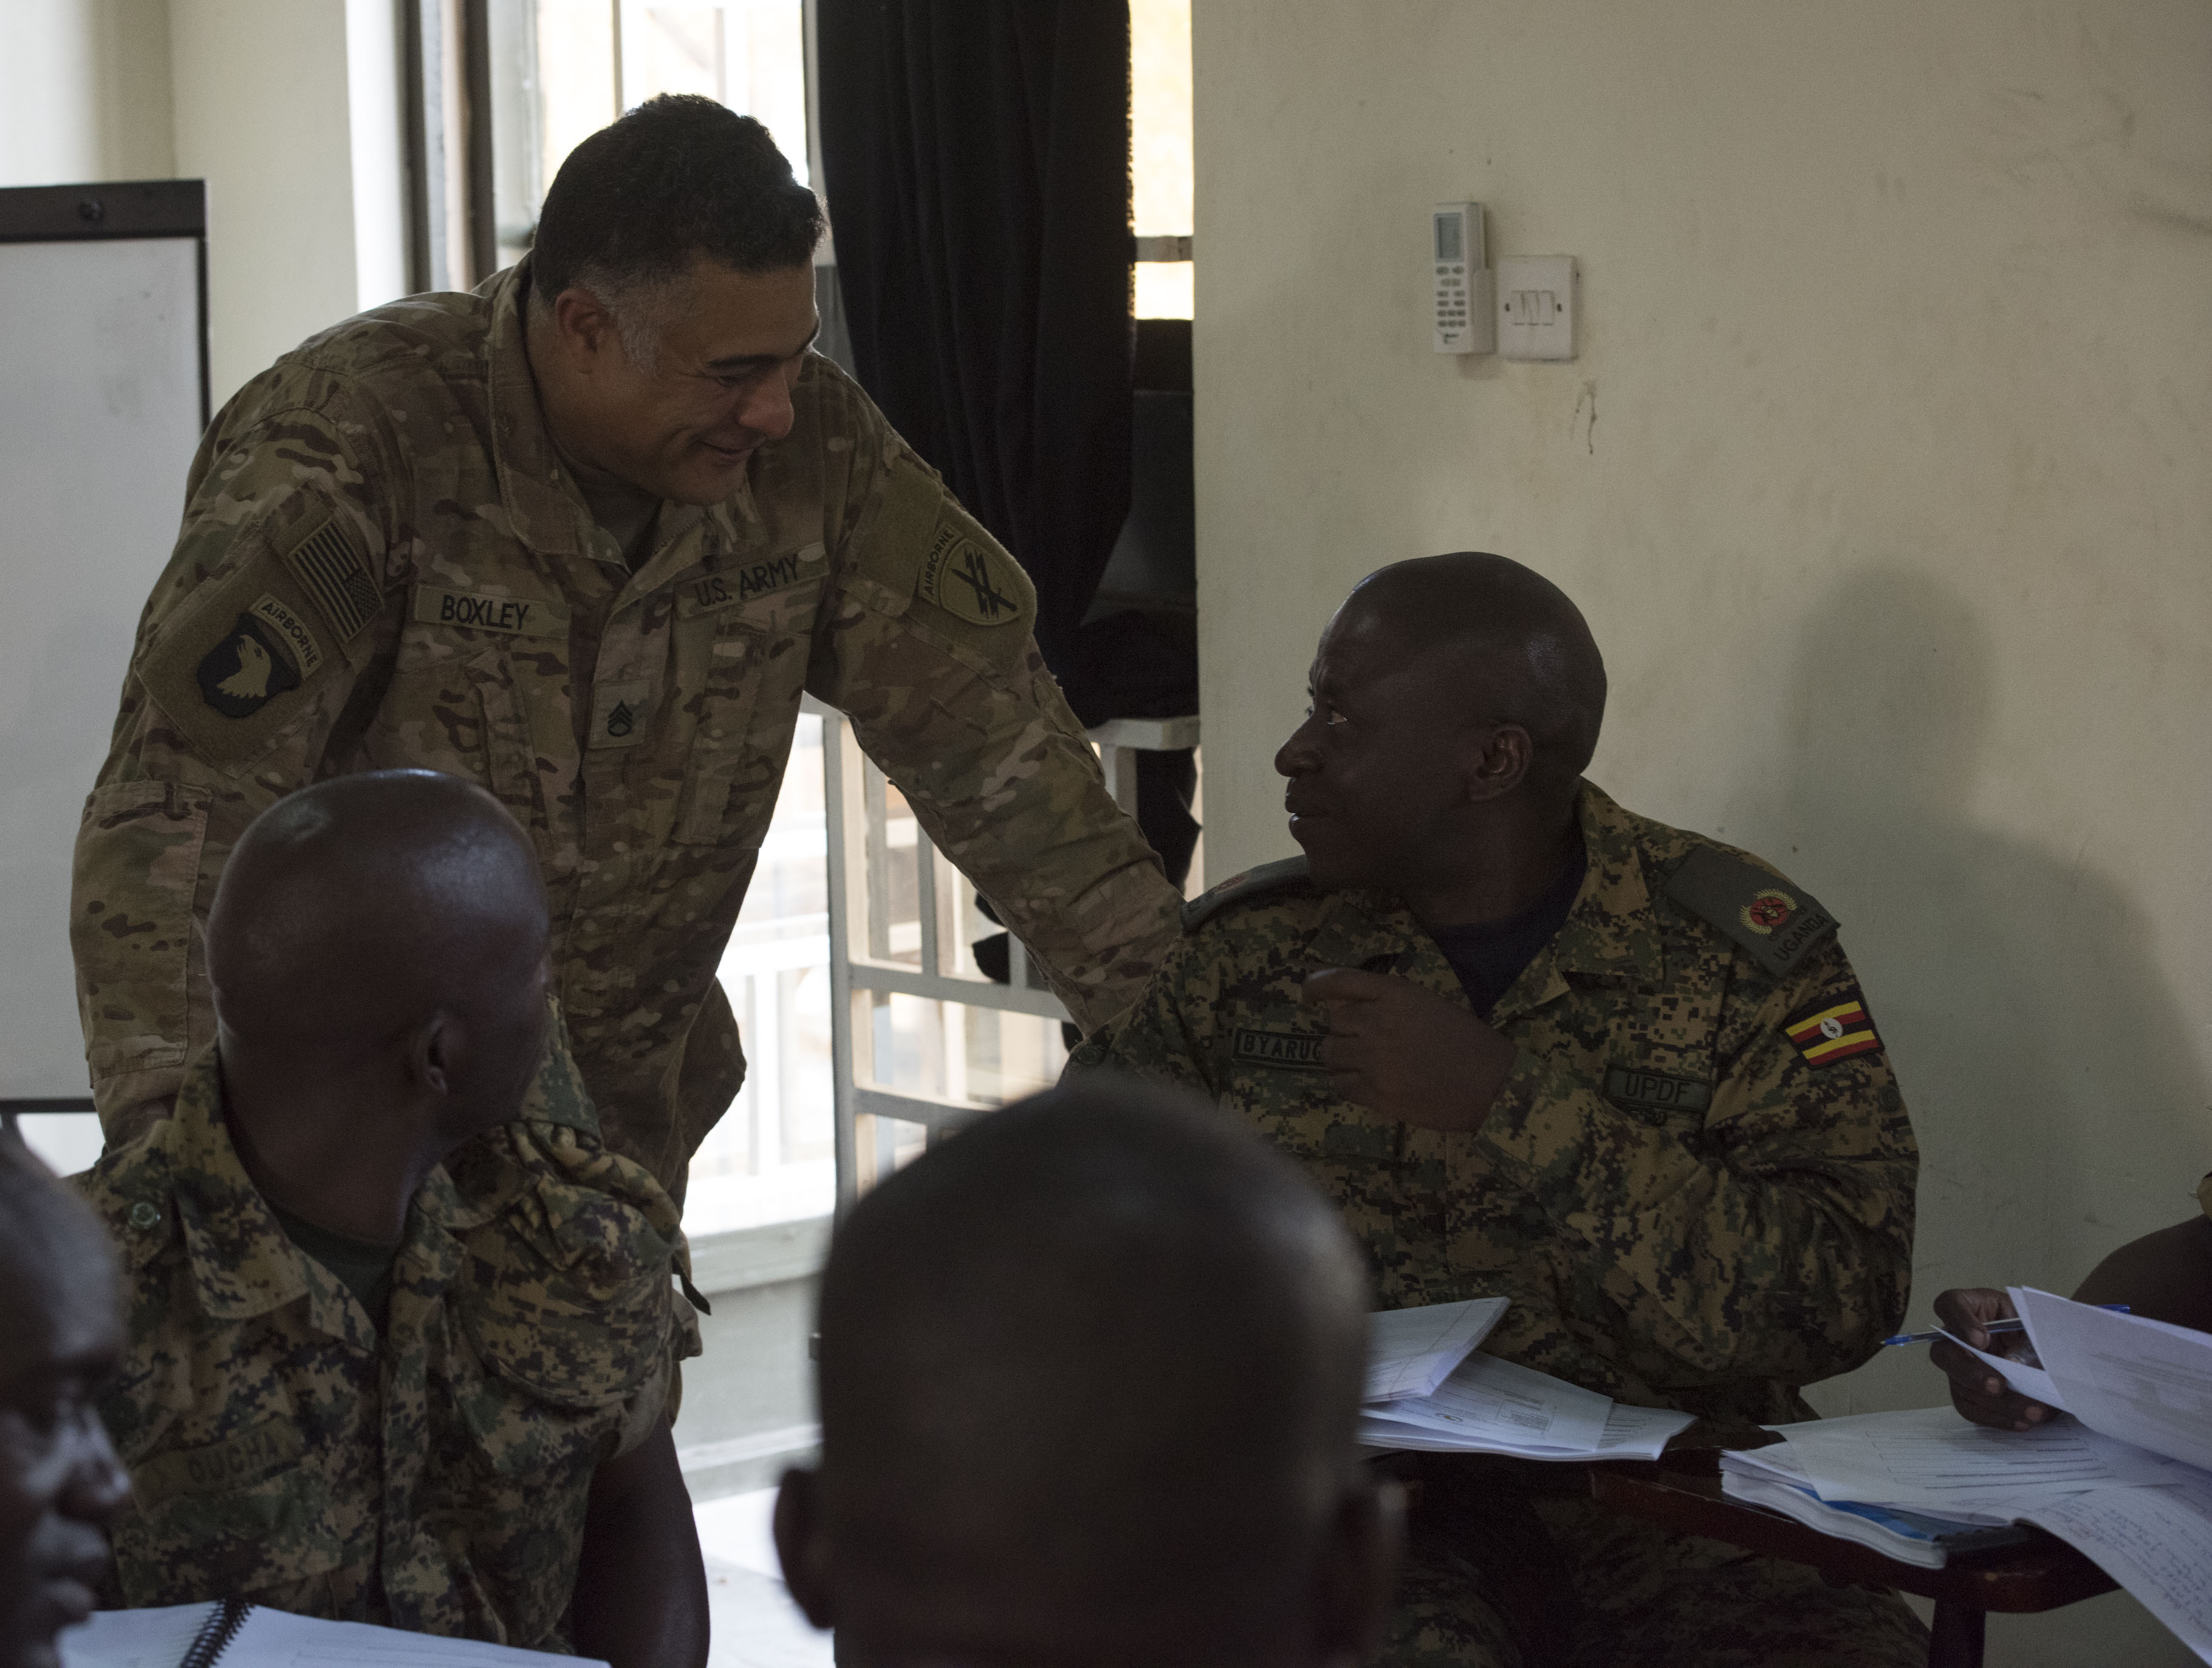 U.S. Army Staff Sgt. Damon Boxley, assigned to the 407th Civil Affairs (CA) Battalion, attached to the Combined Joint Task Force - Horn of Africa, teaches a Civil-Military (CIMIC) course to soldiers from the Uganda People's Defence Force (UPDF) as part of a Civil Affairs Tactical Company Course held at Camp Singo, Uganda, Feb. 08, 2018.  CJTF-HOA service members are forward deployed to Camp Singo to advise and assist the UPDF in preparing Ugandan Battle Group 25 for an upcoming deployment in support of the African Union Mission in Somalia (AMISOM). (U.S. Air National Guard photo by Staff Sgt. Allyson L. Manners)